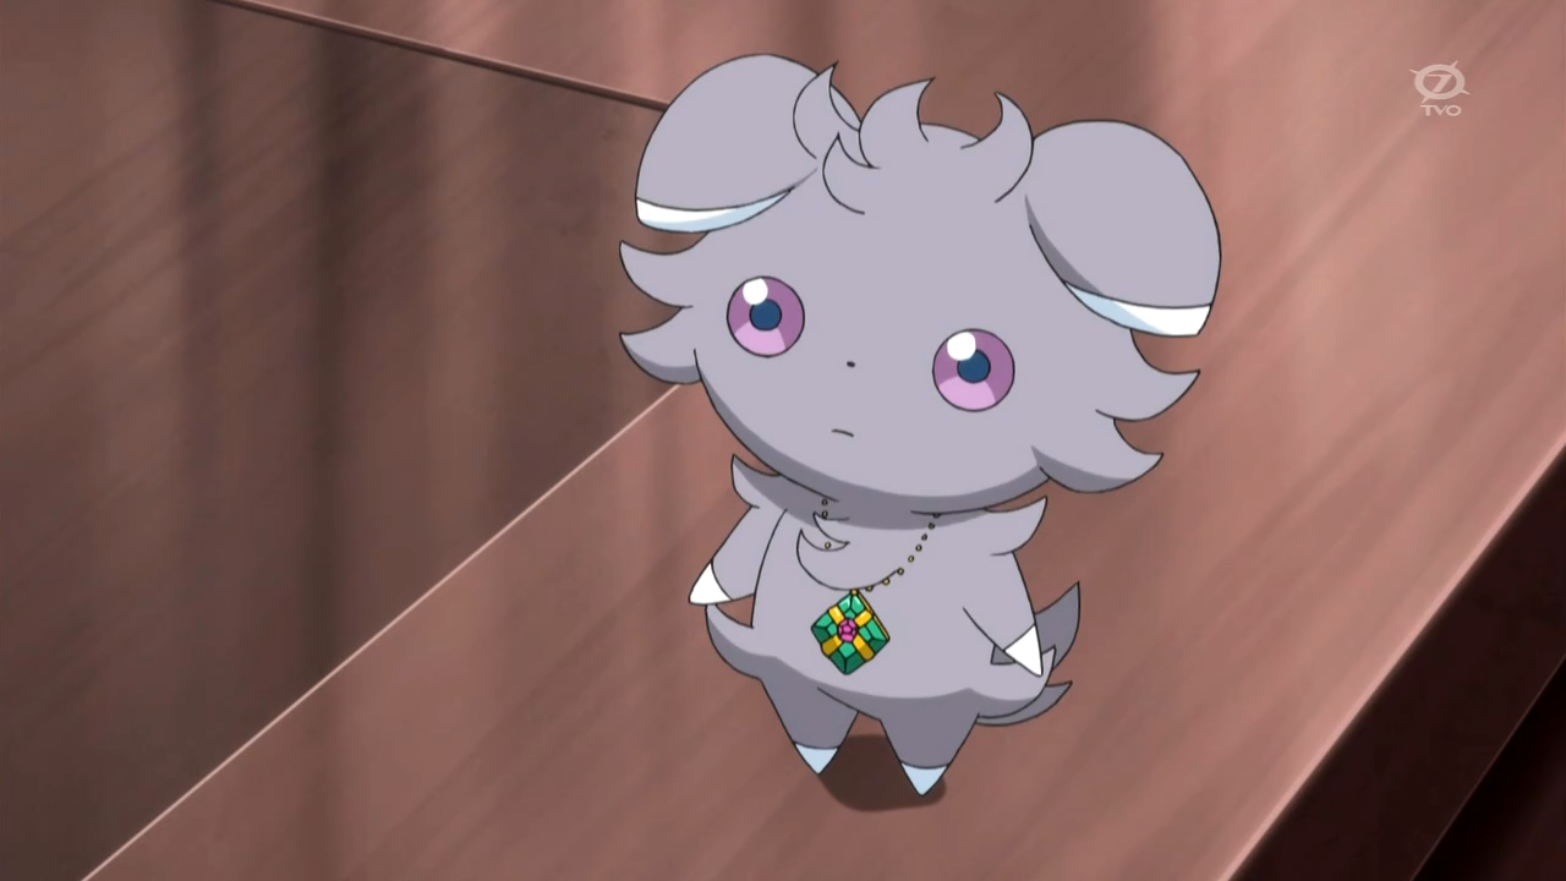 Elise befriended Espurr, who went with her to Lacy's grave to pay respects.